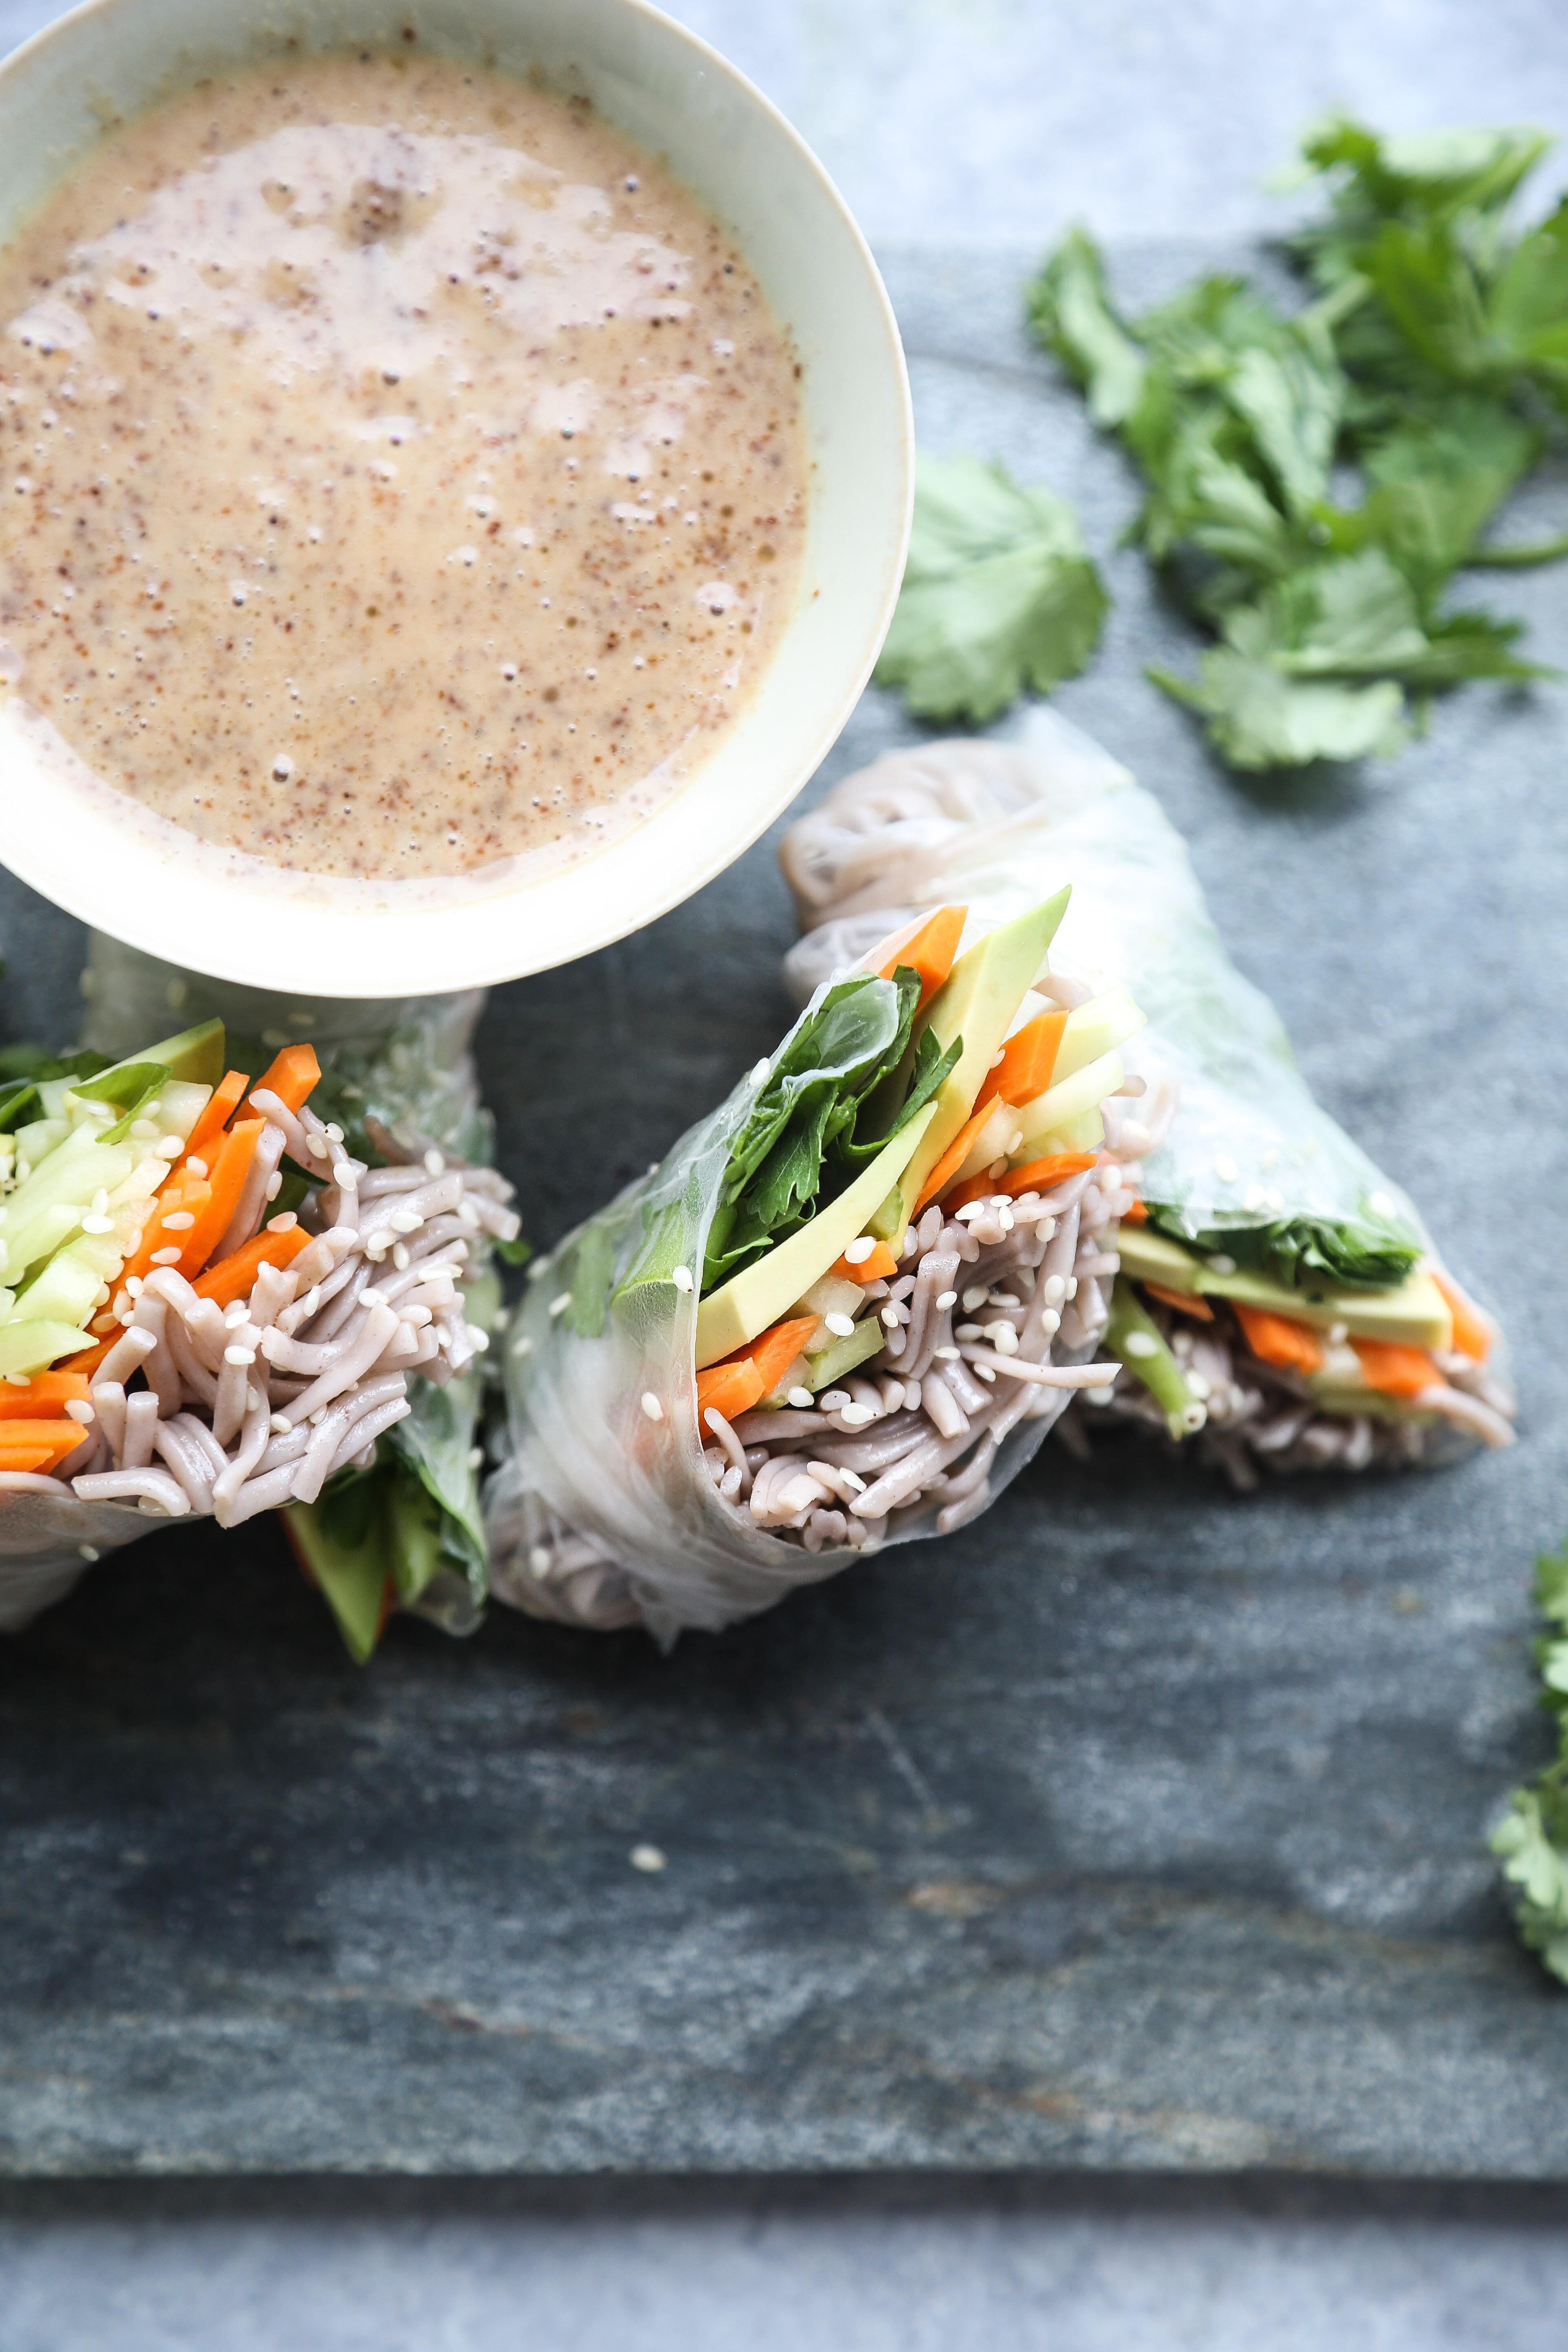 Fresh Soba Noodle Spring Rolls with Almond Butter Dipping Sauce from @CookieandKate #LoveRealFood Cookbook | Gluten-Free, Healthy, Vegetarian